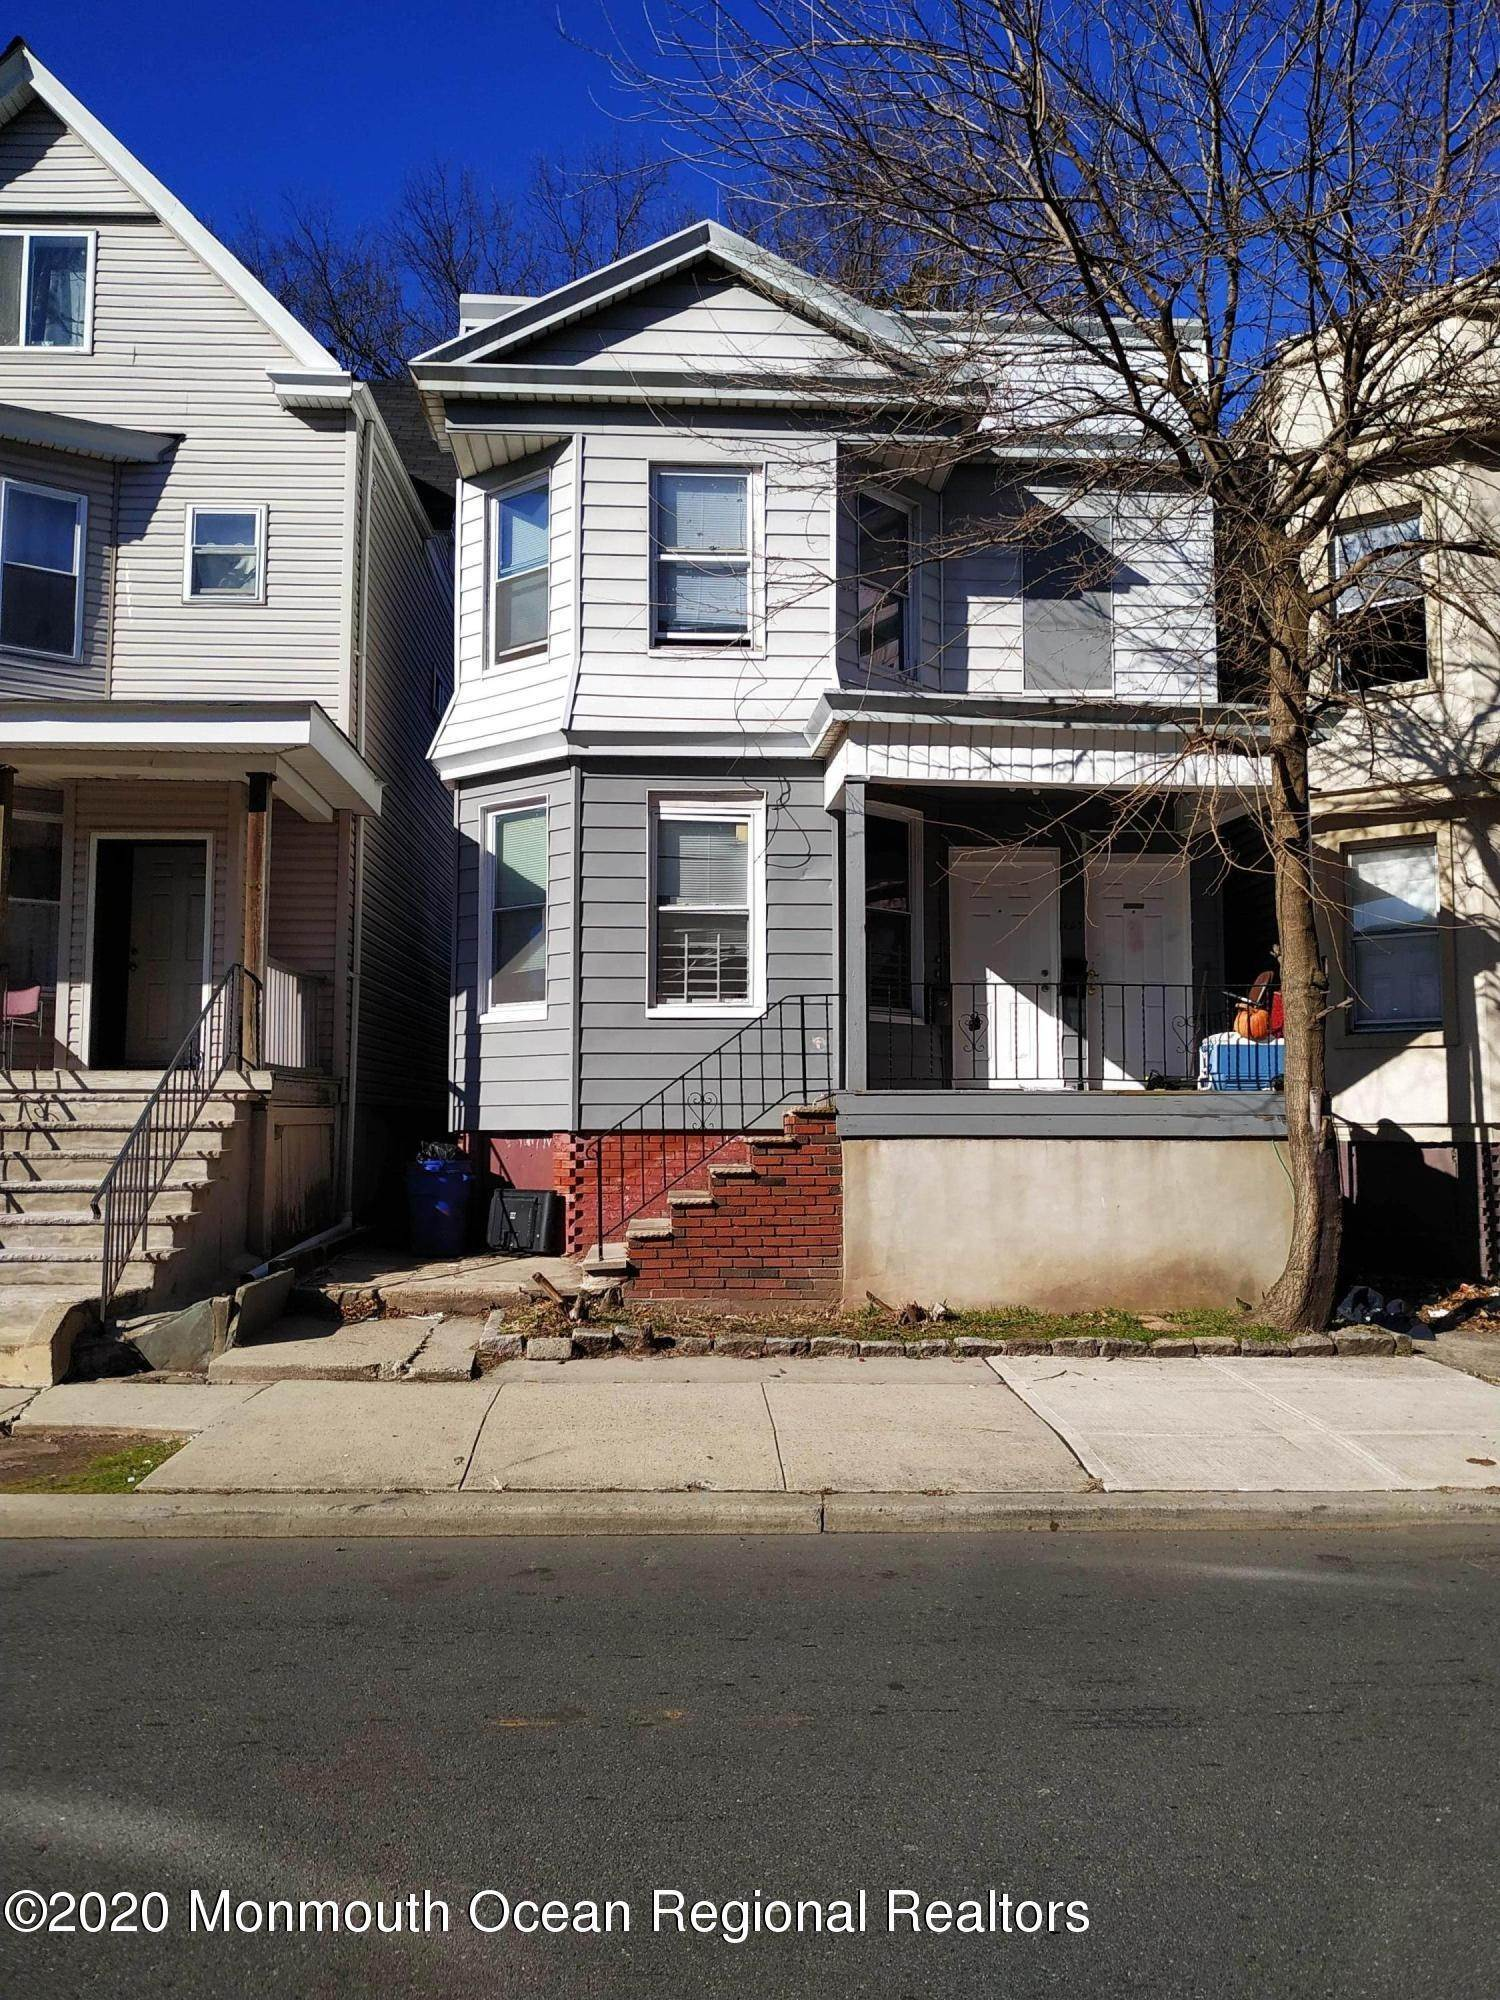 Multi-Family Homes for Sale at 253 19th Street East Orange, New Jersey 07017 United States